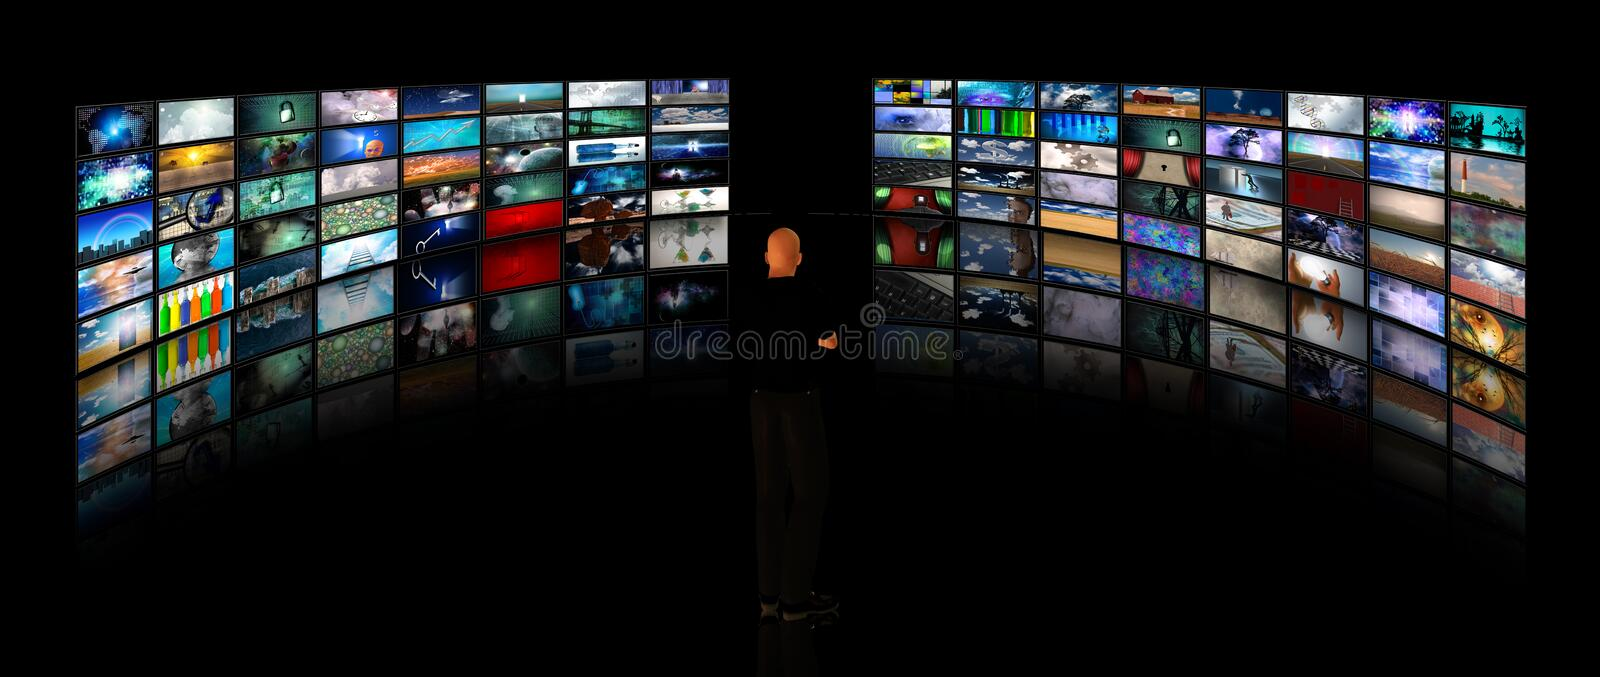 Man viewing video displays stock photography